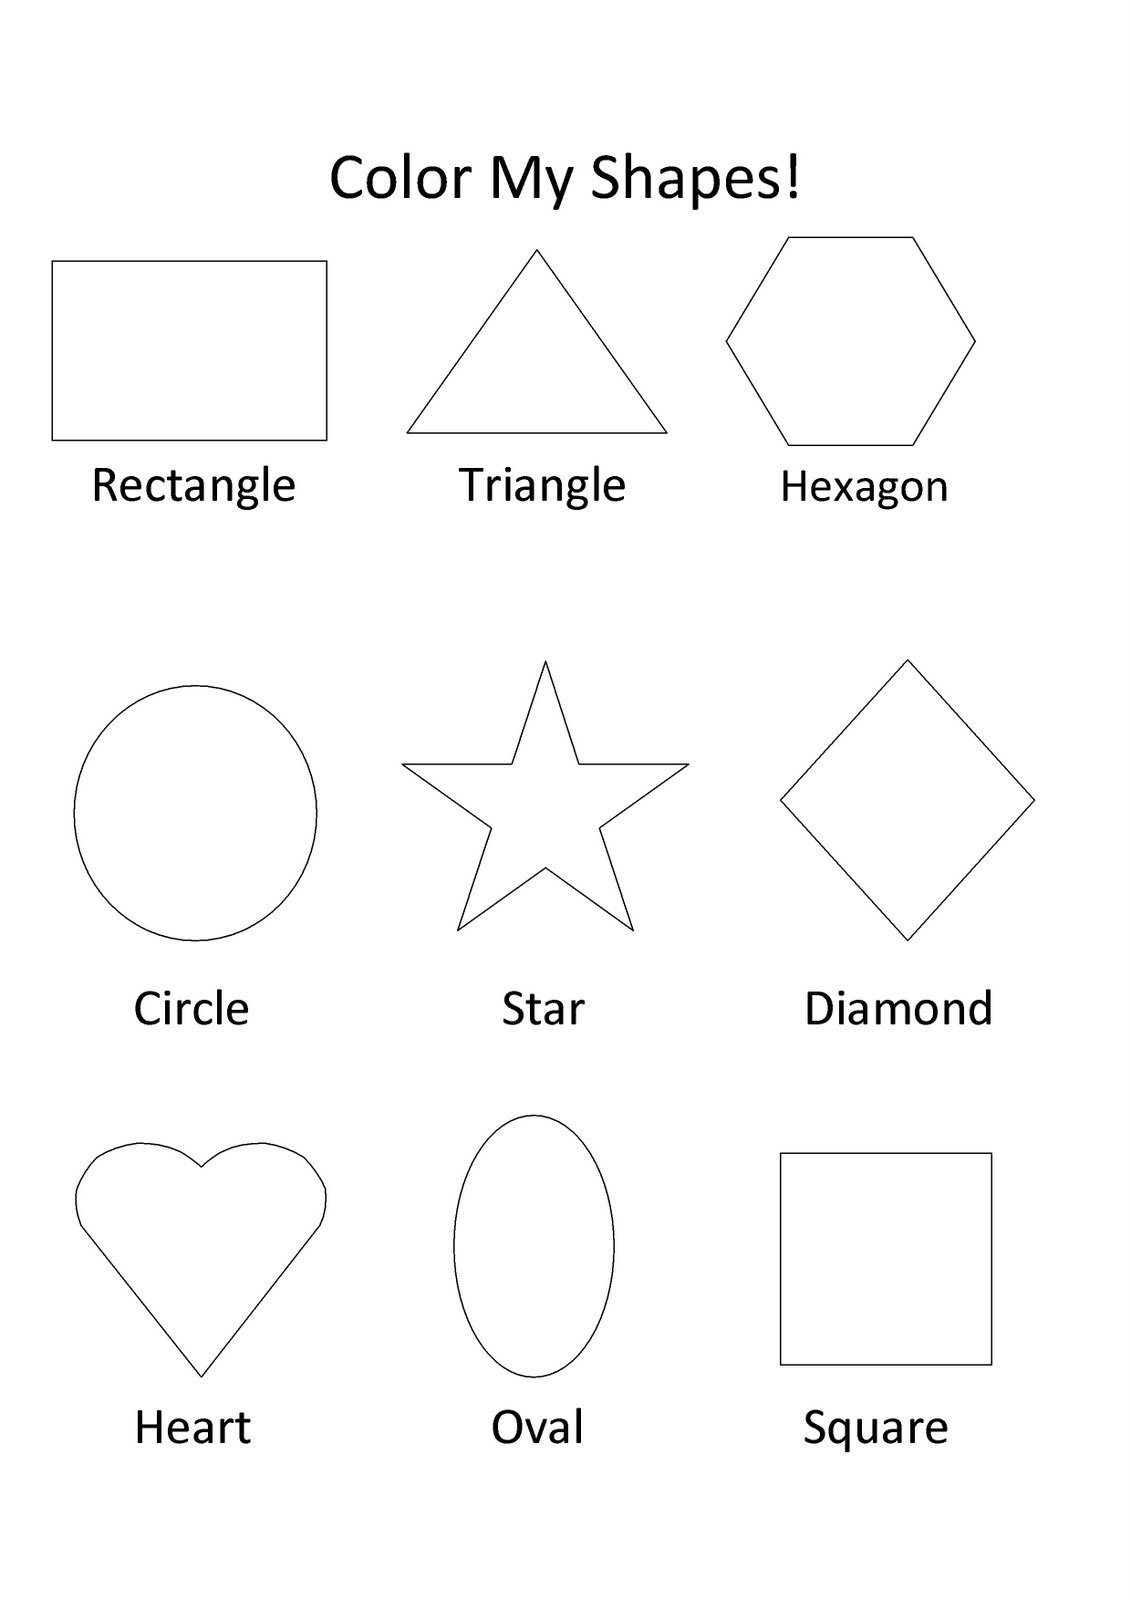 Preschool Shapes Coloring Pages : Free Printable Shapes Coloring Pages